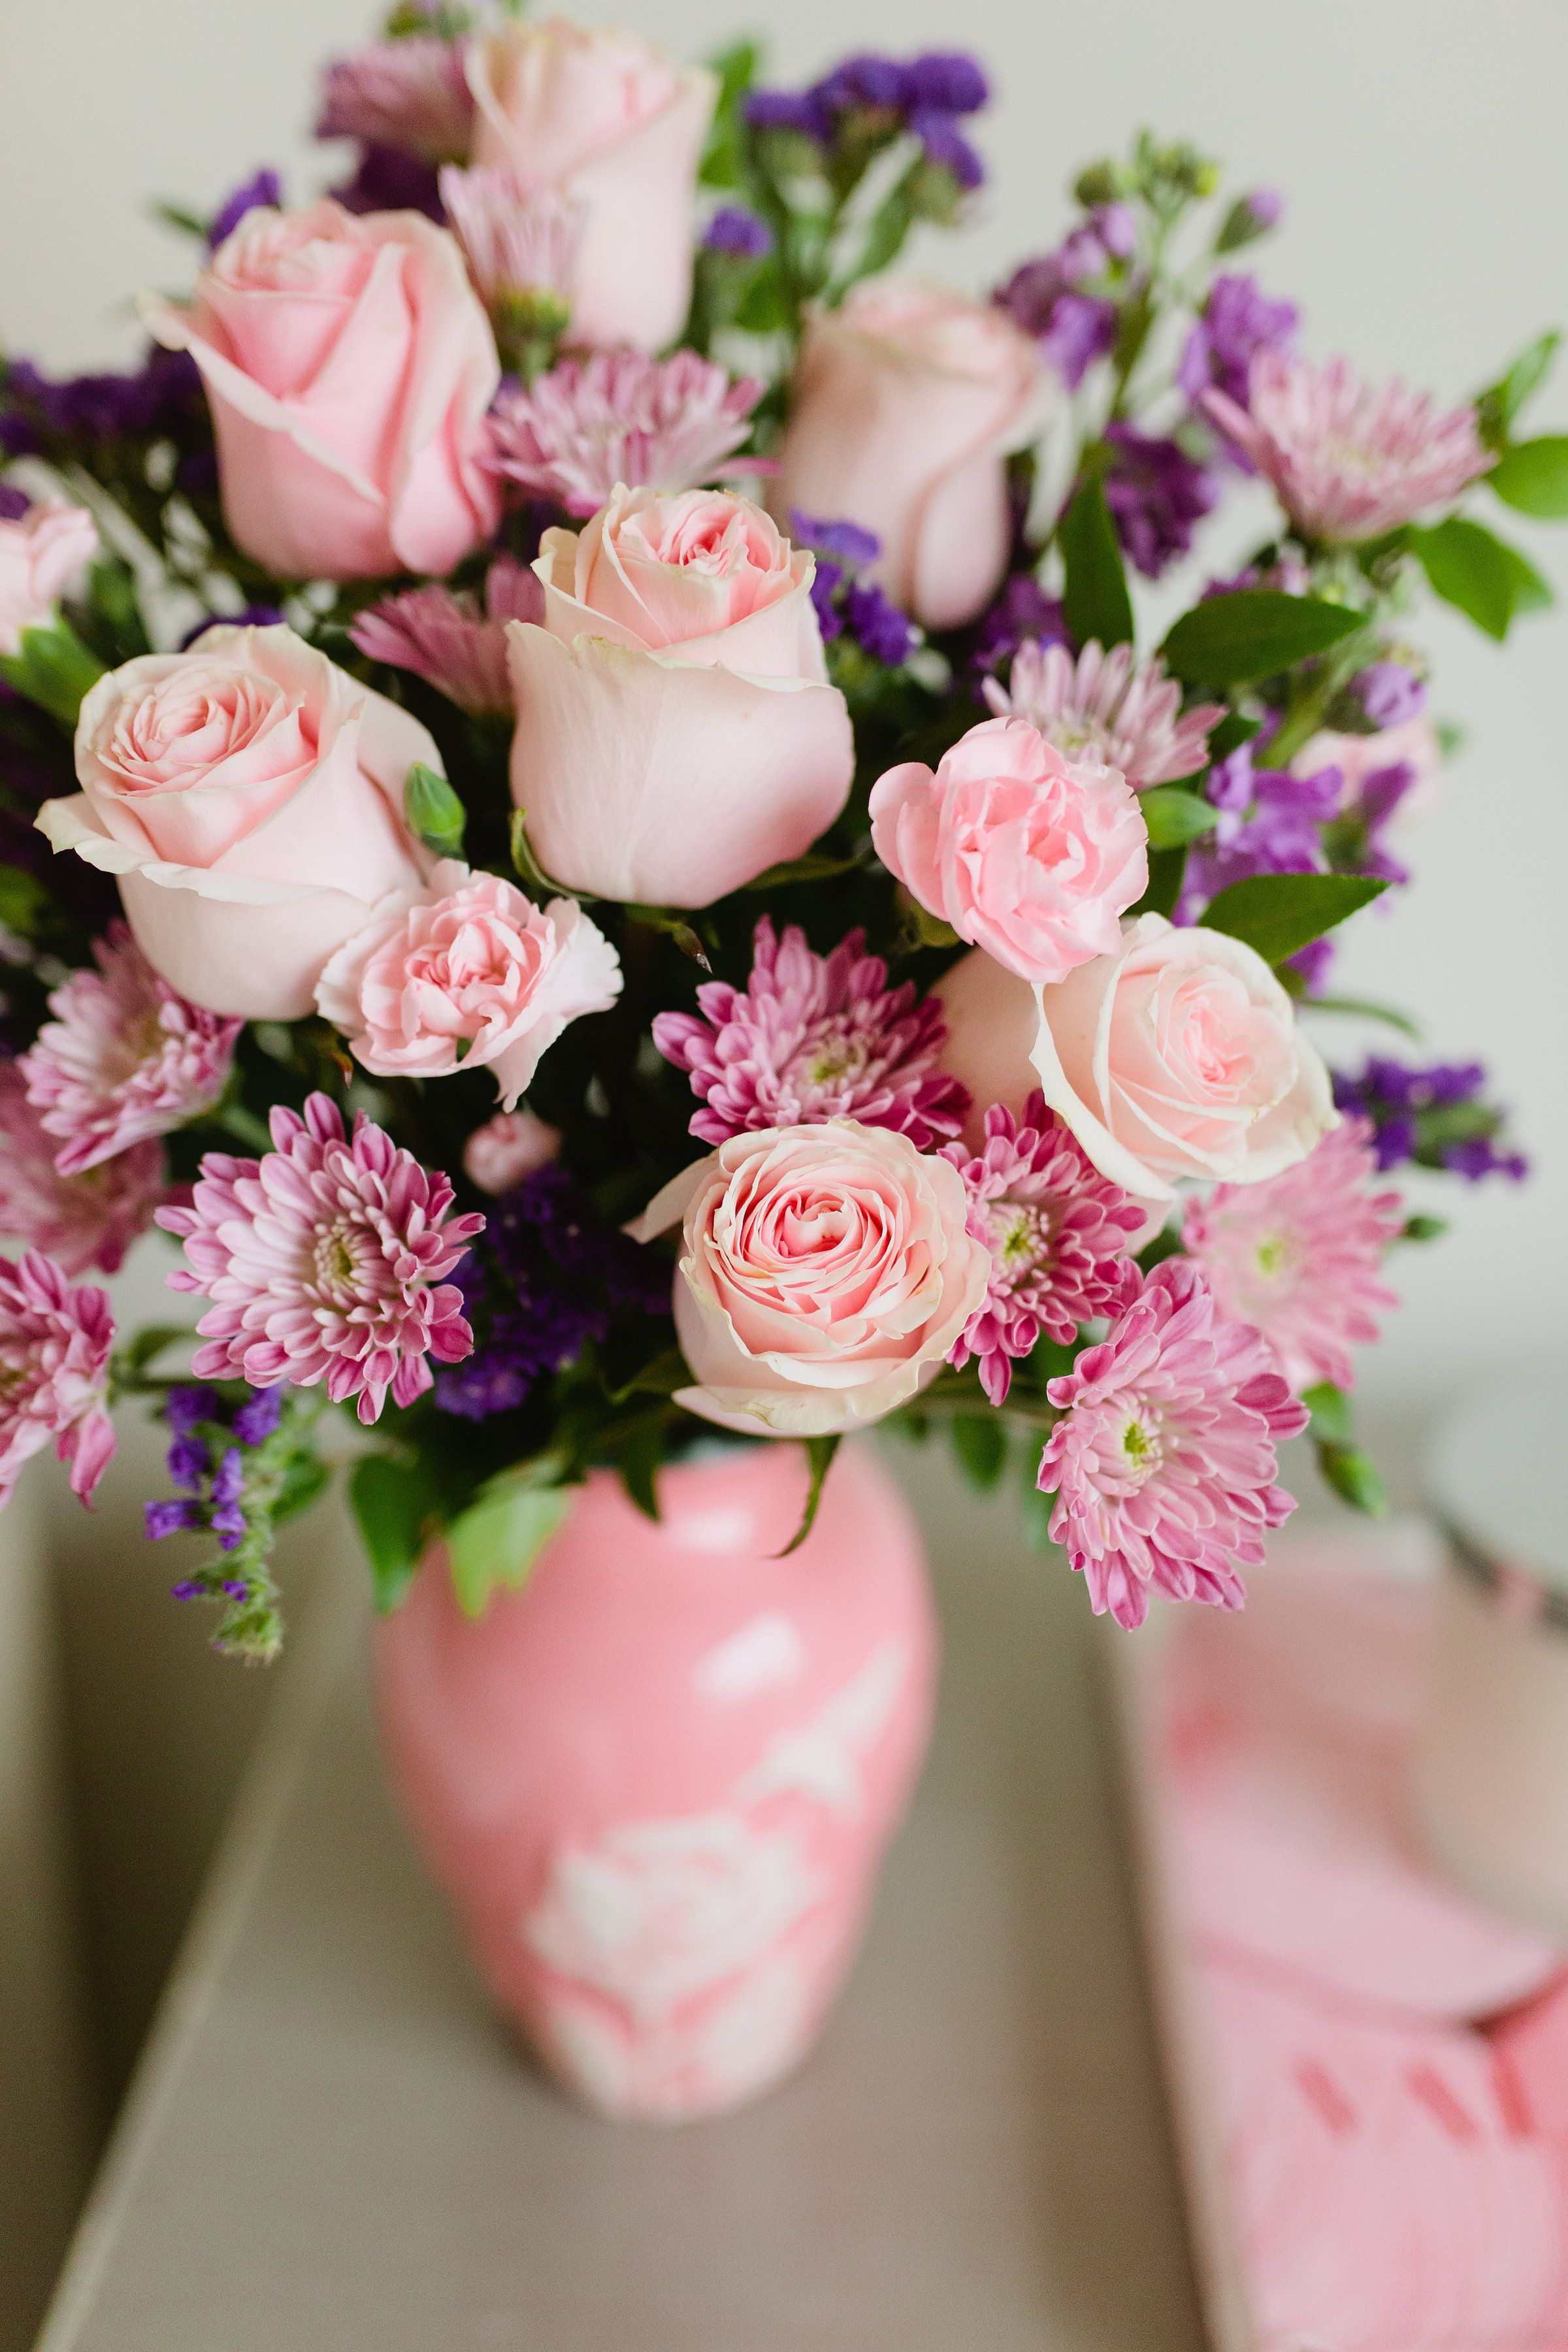 Pin By Julie On Roses Flowers Pinterest Flowers Flowers